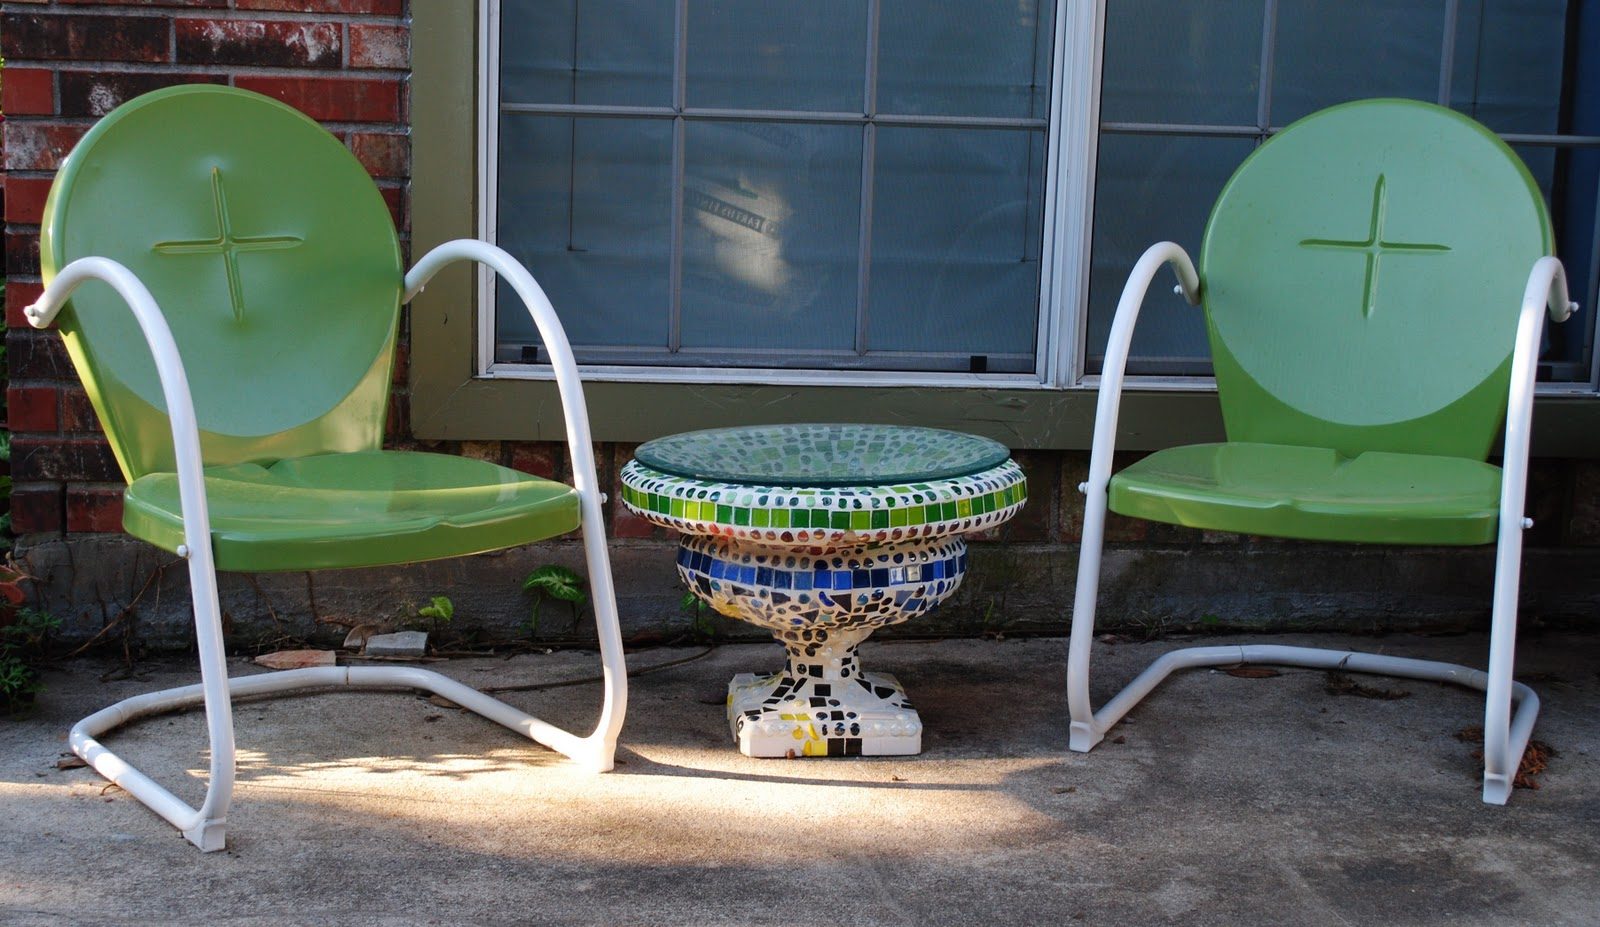 Lucy's in the Garden: My Mosaic Garden Urn